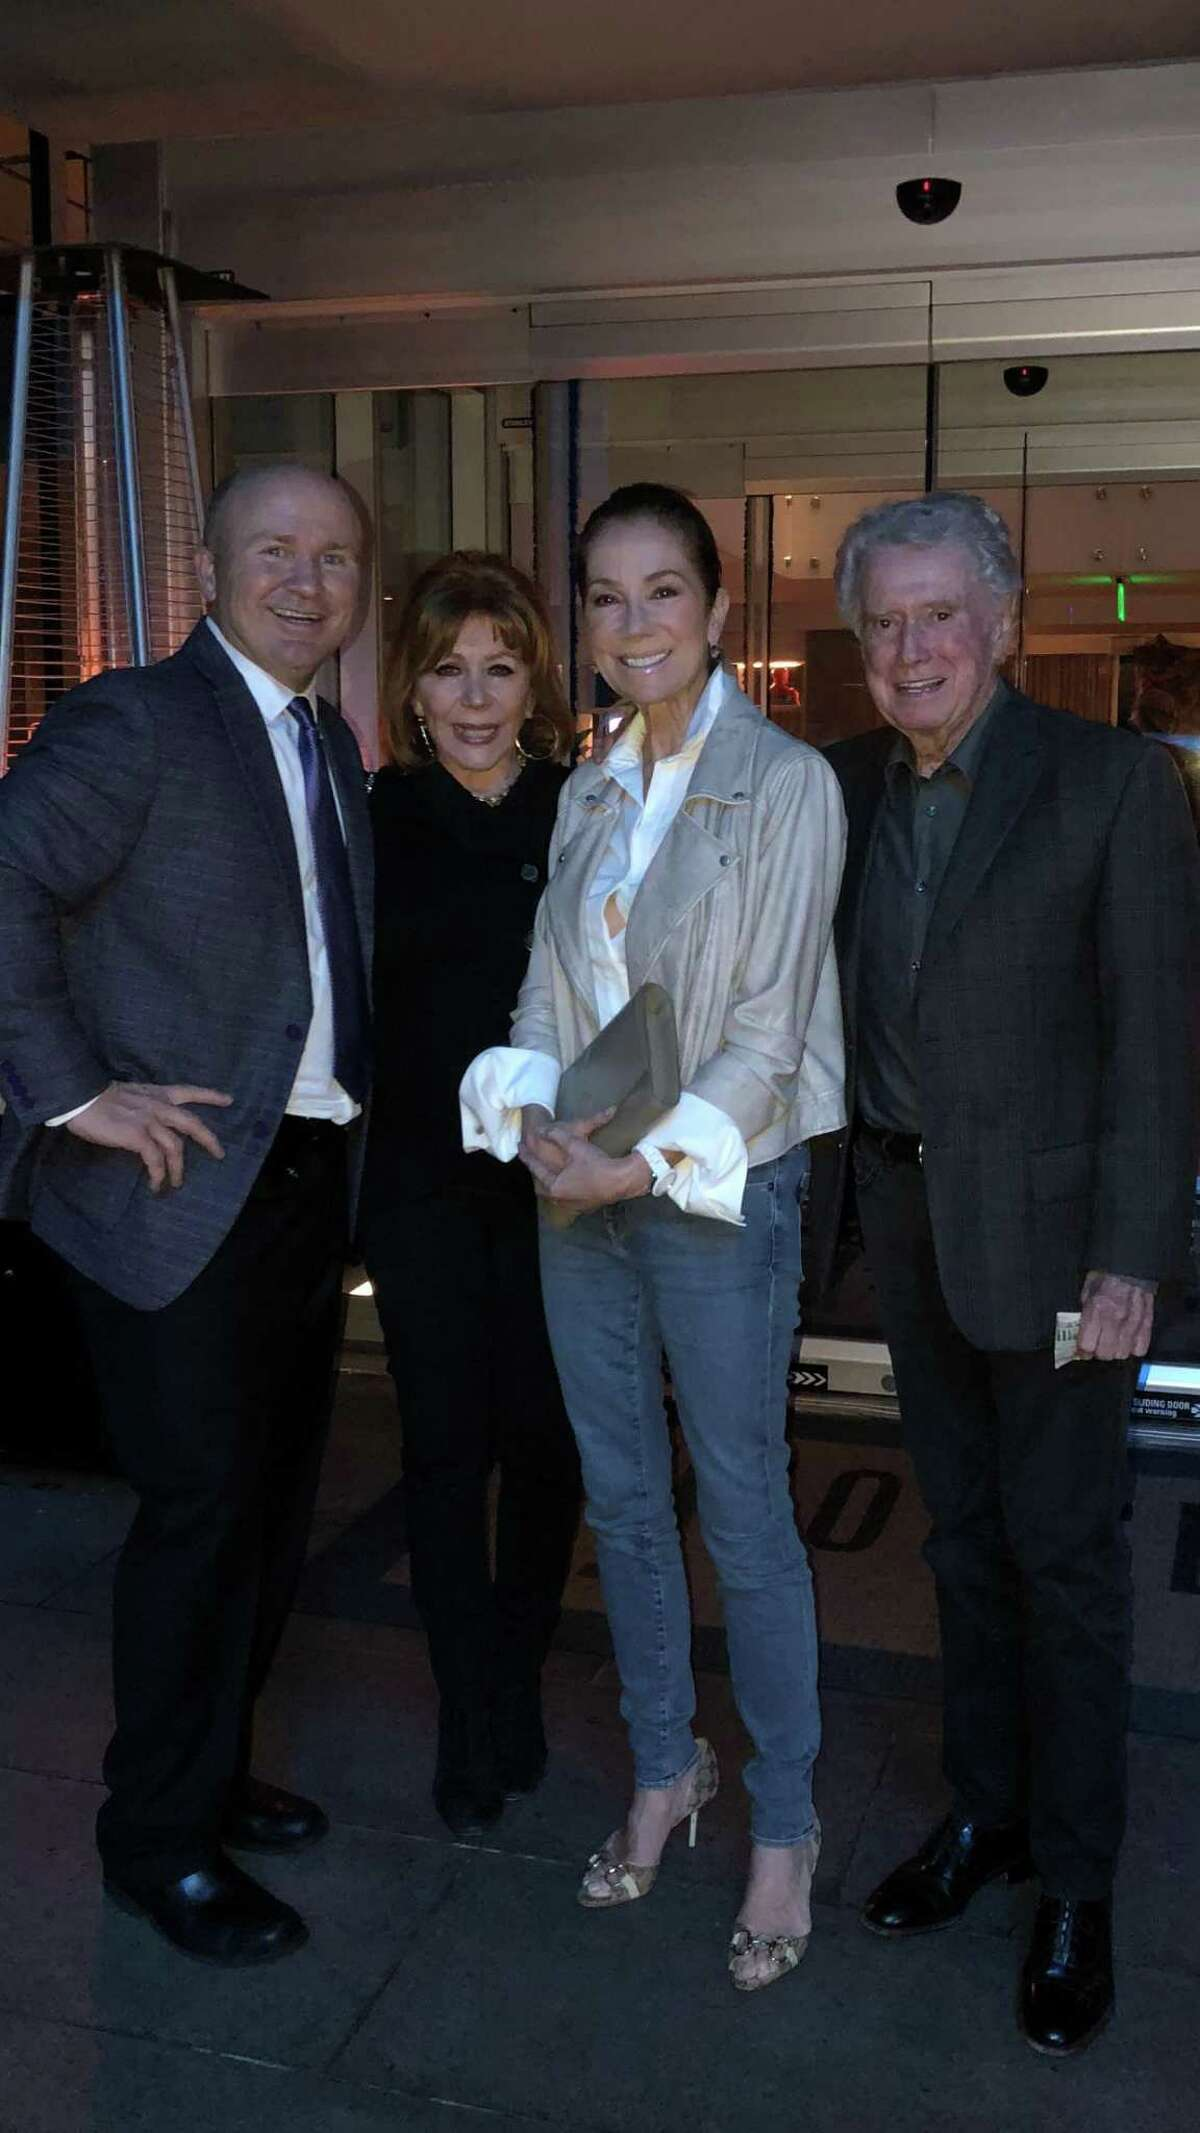 JHOUSE Food and Beverage Manager Tony Capasso with TV personalities' and Greenwich resident's Joy Philbin, Kathiee Lee Gifford and Regis Philbin at the JHOUSE in Riverside lin 2018.